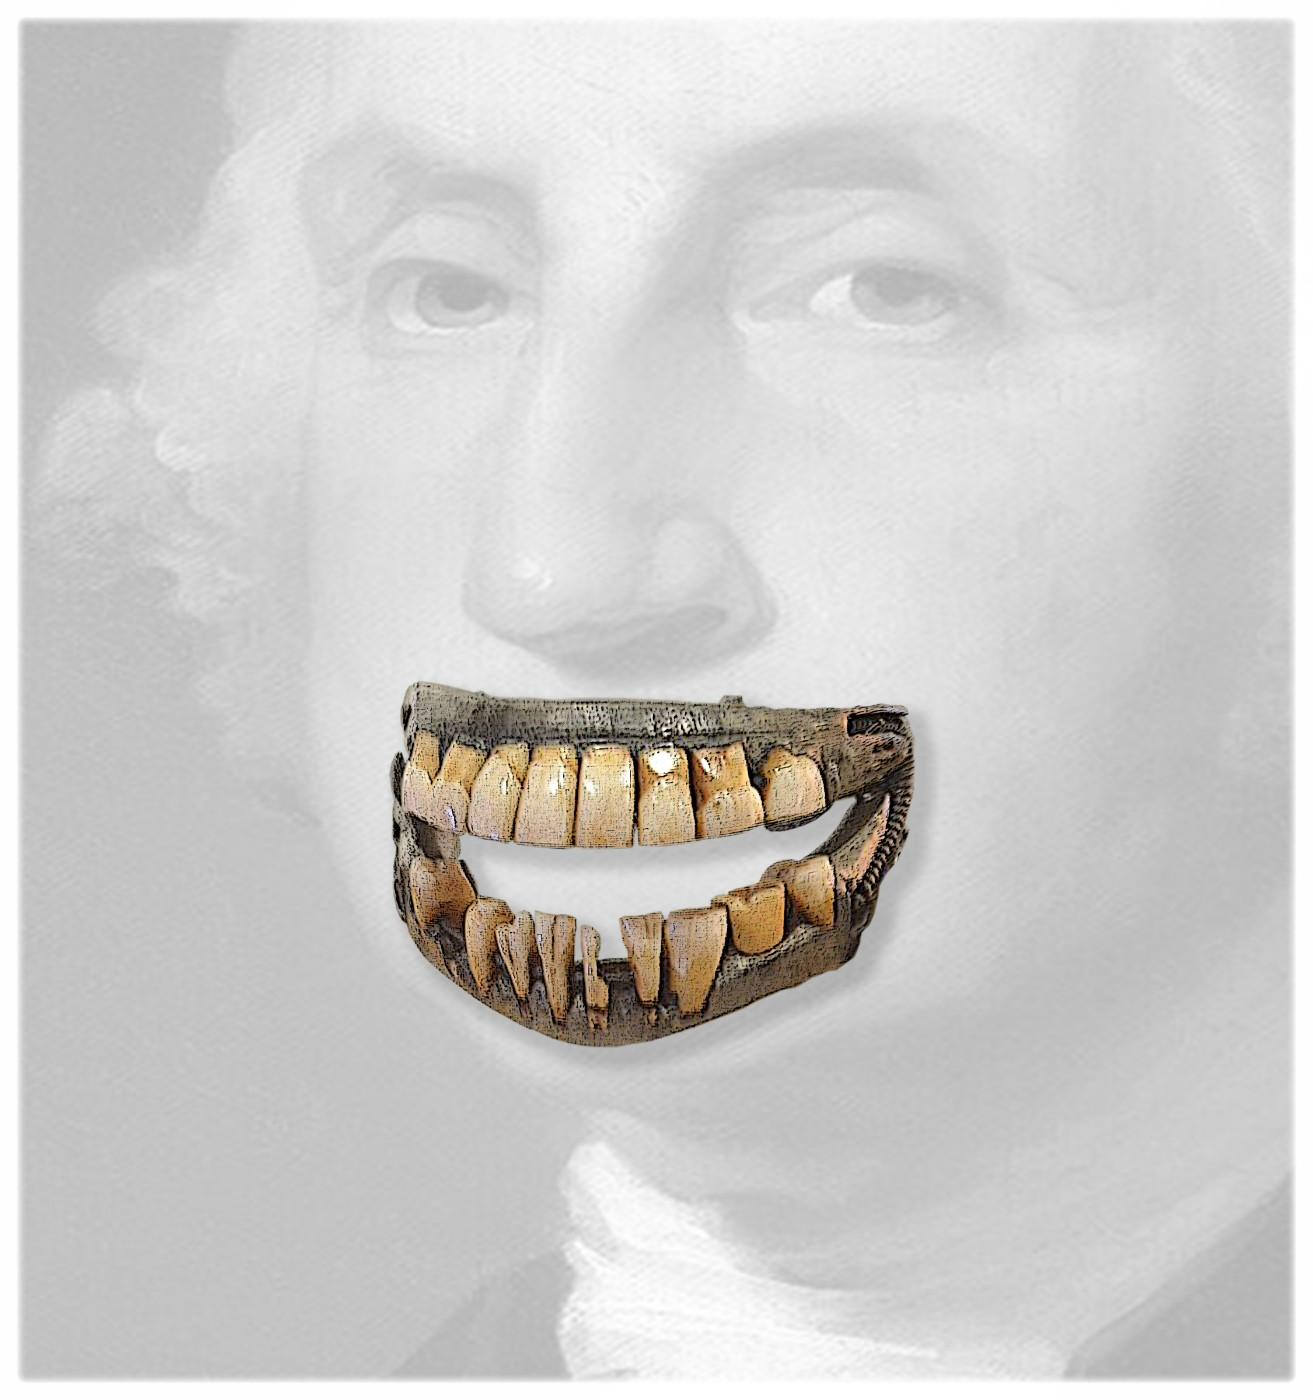 Colin Quashie, Smile, 2018-19. Digital collage.